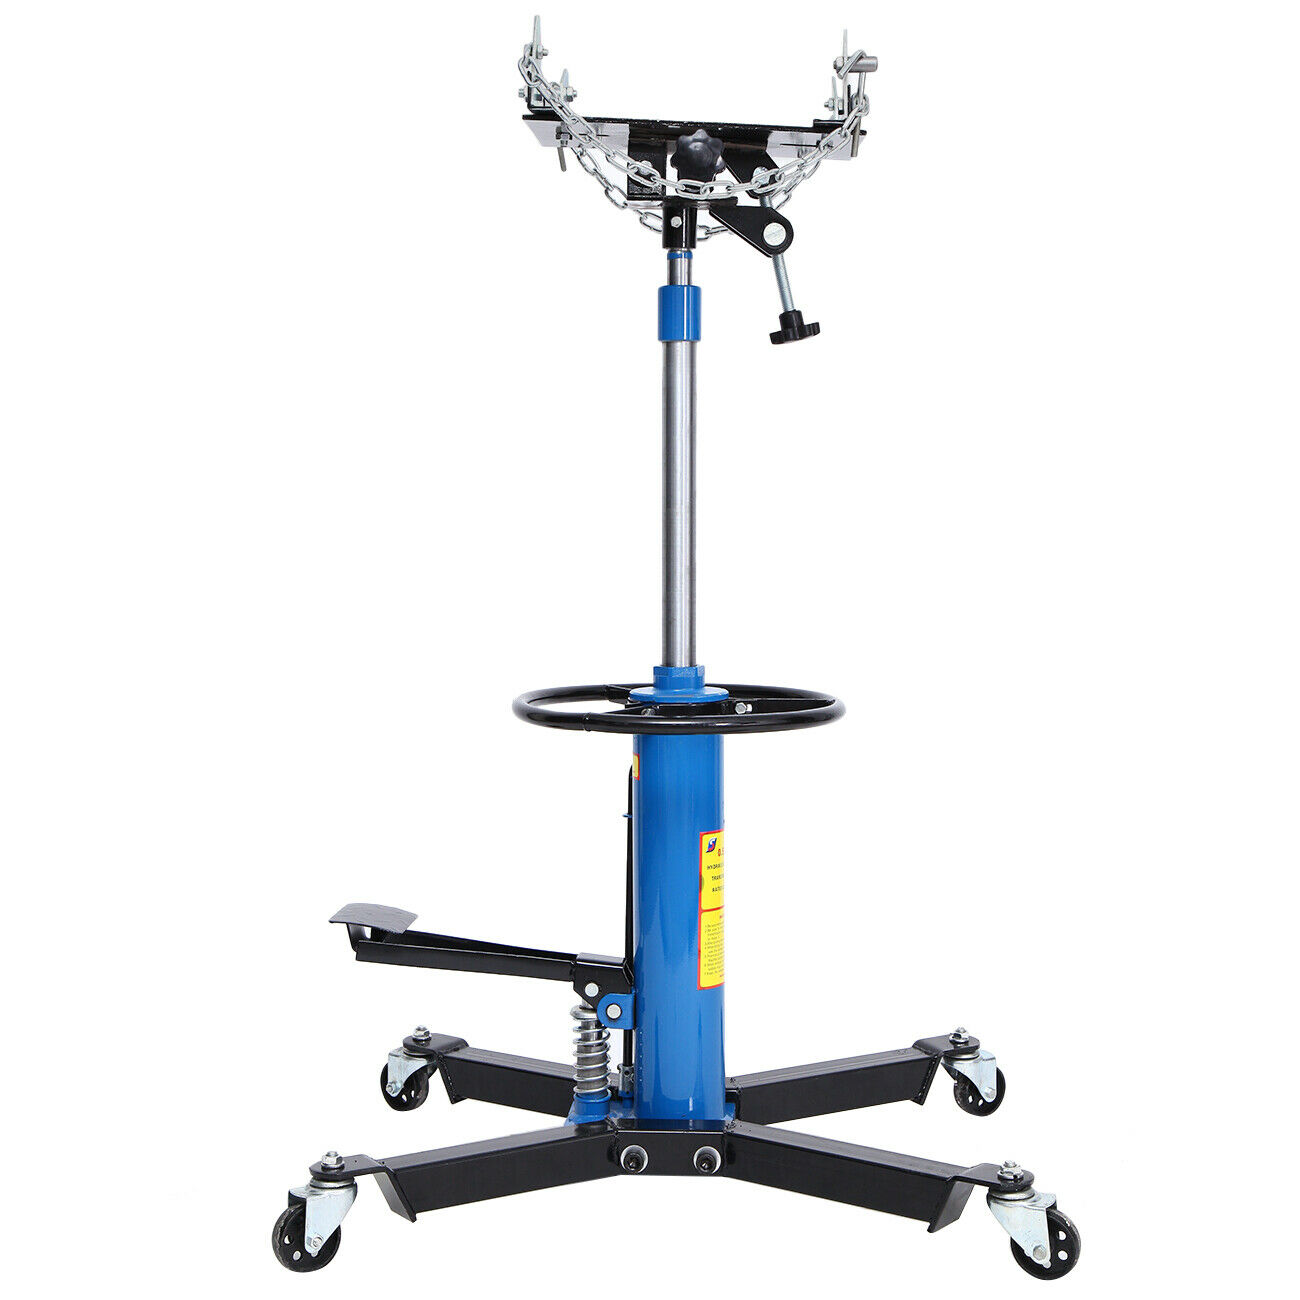 1100LBS 2Stage Car Hydraulic Jack Hydraulic High Lift Foot Pump Spring Loaded Transmission Jack For Car Truck Triler